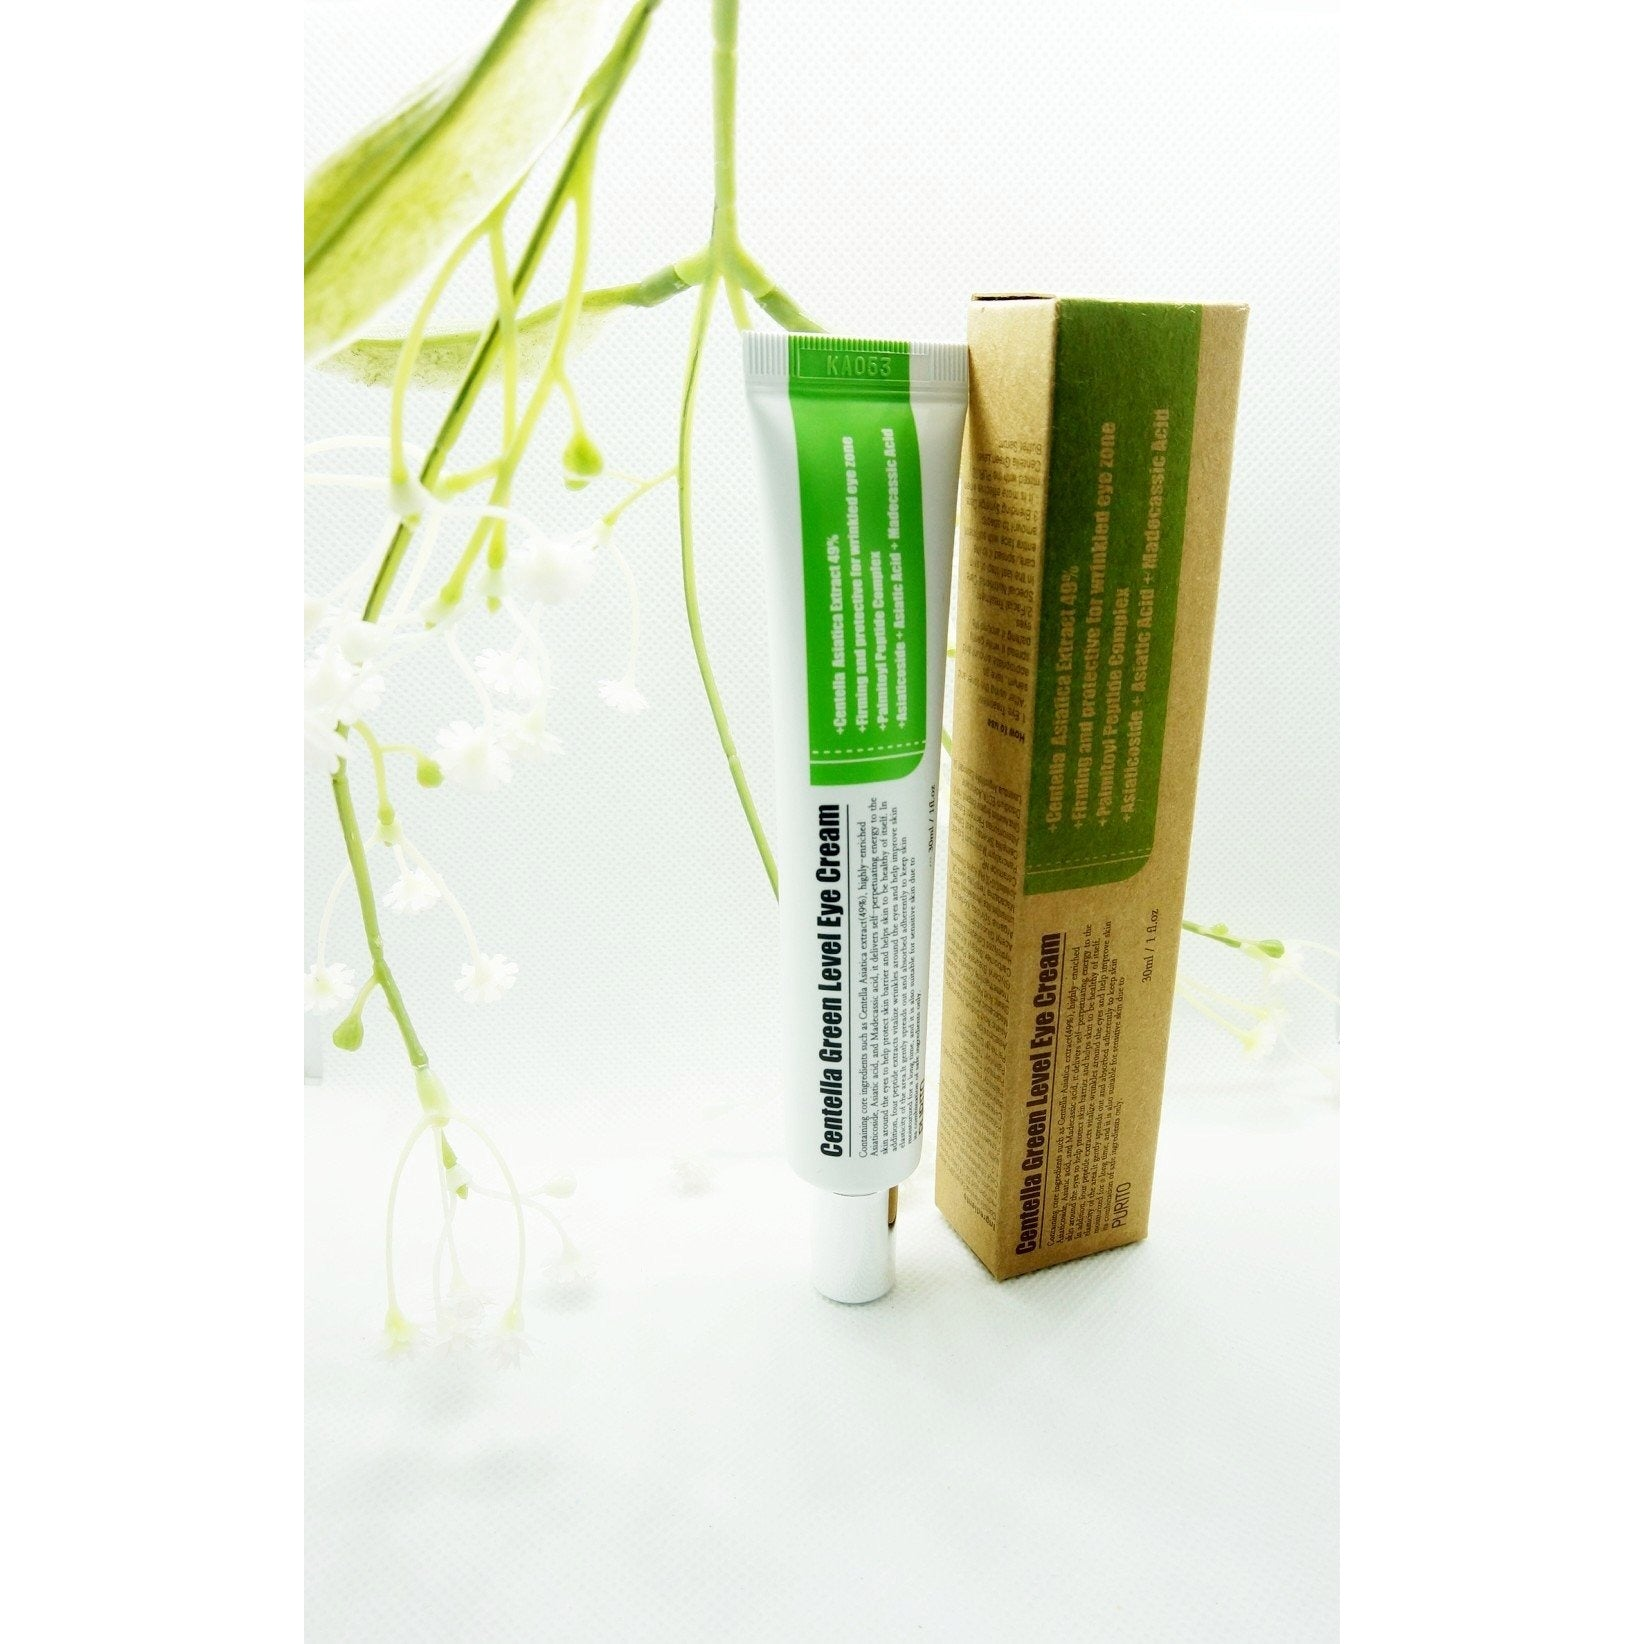 Centella Green Level Eye Cream by Purito - SKIN.IS